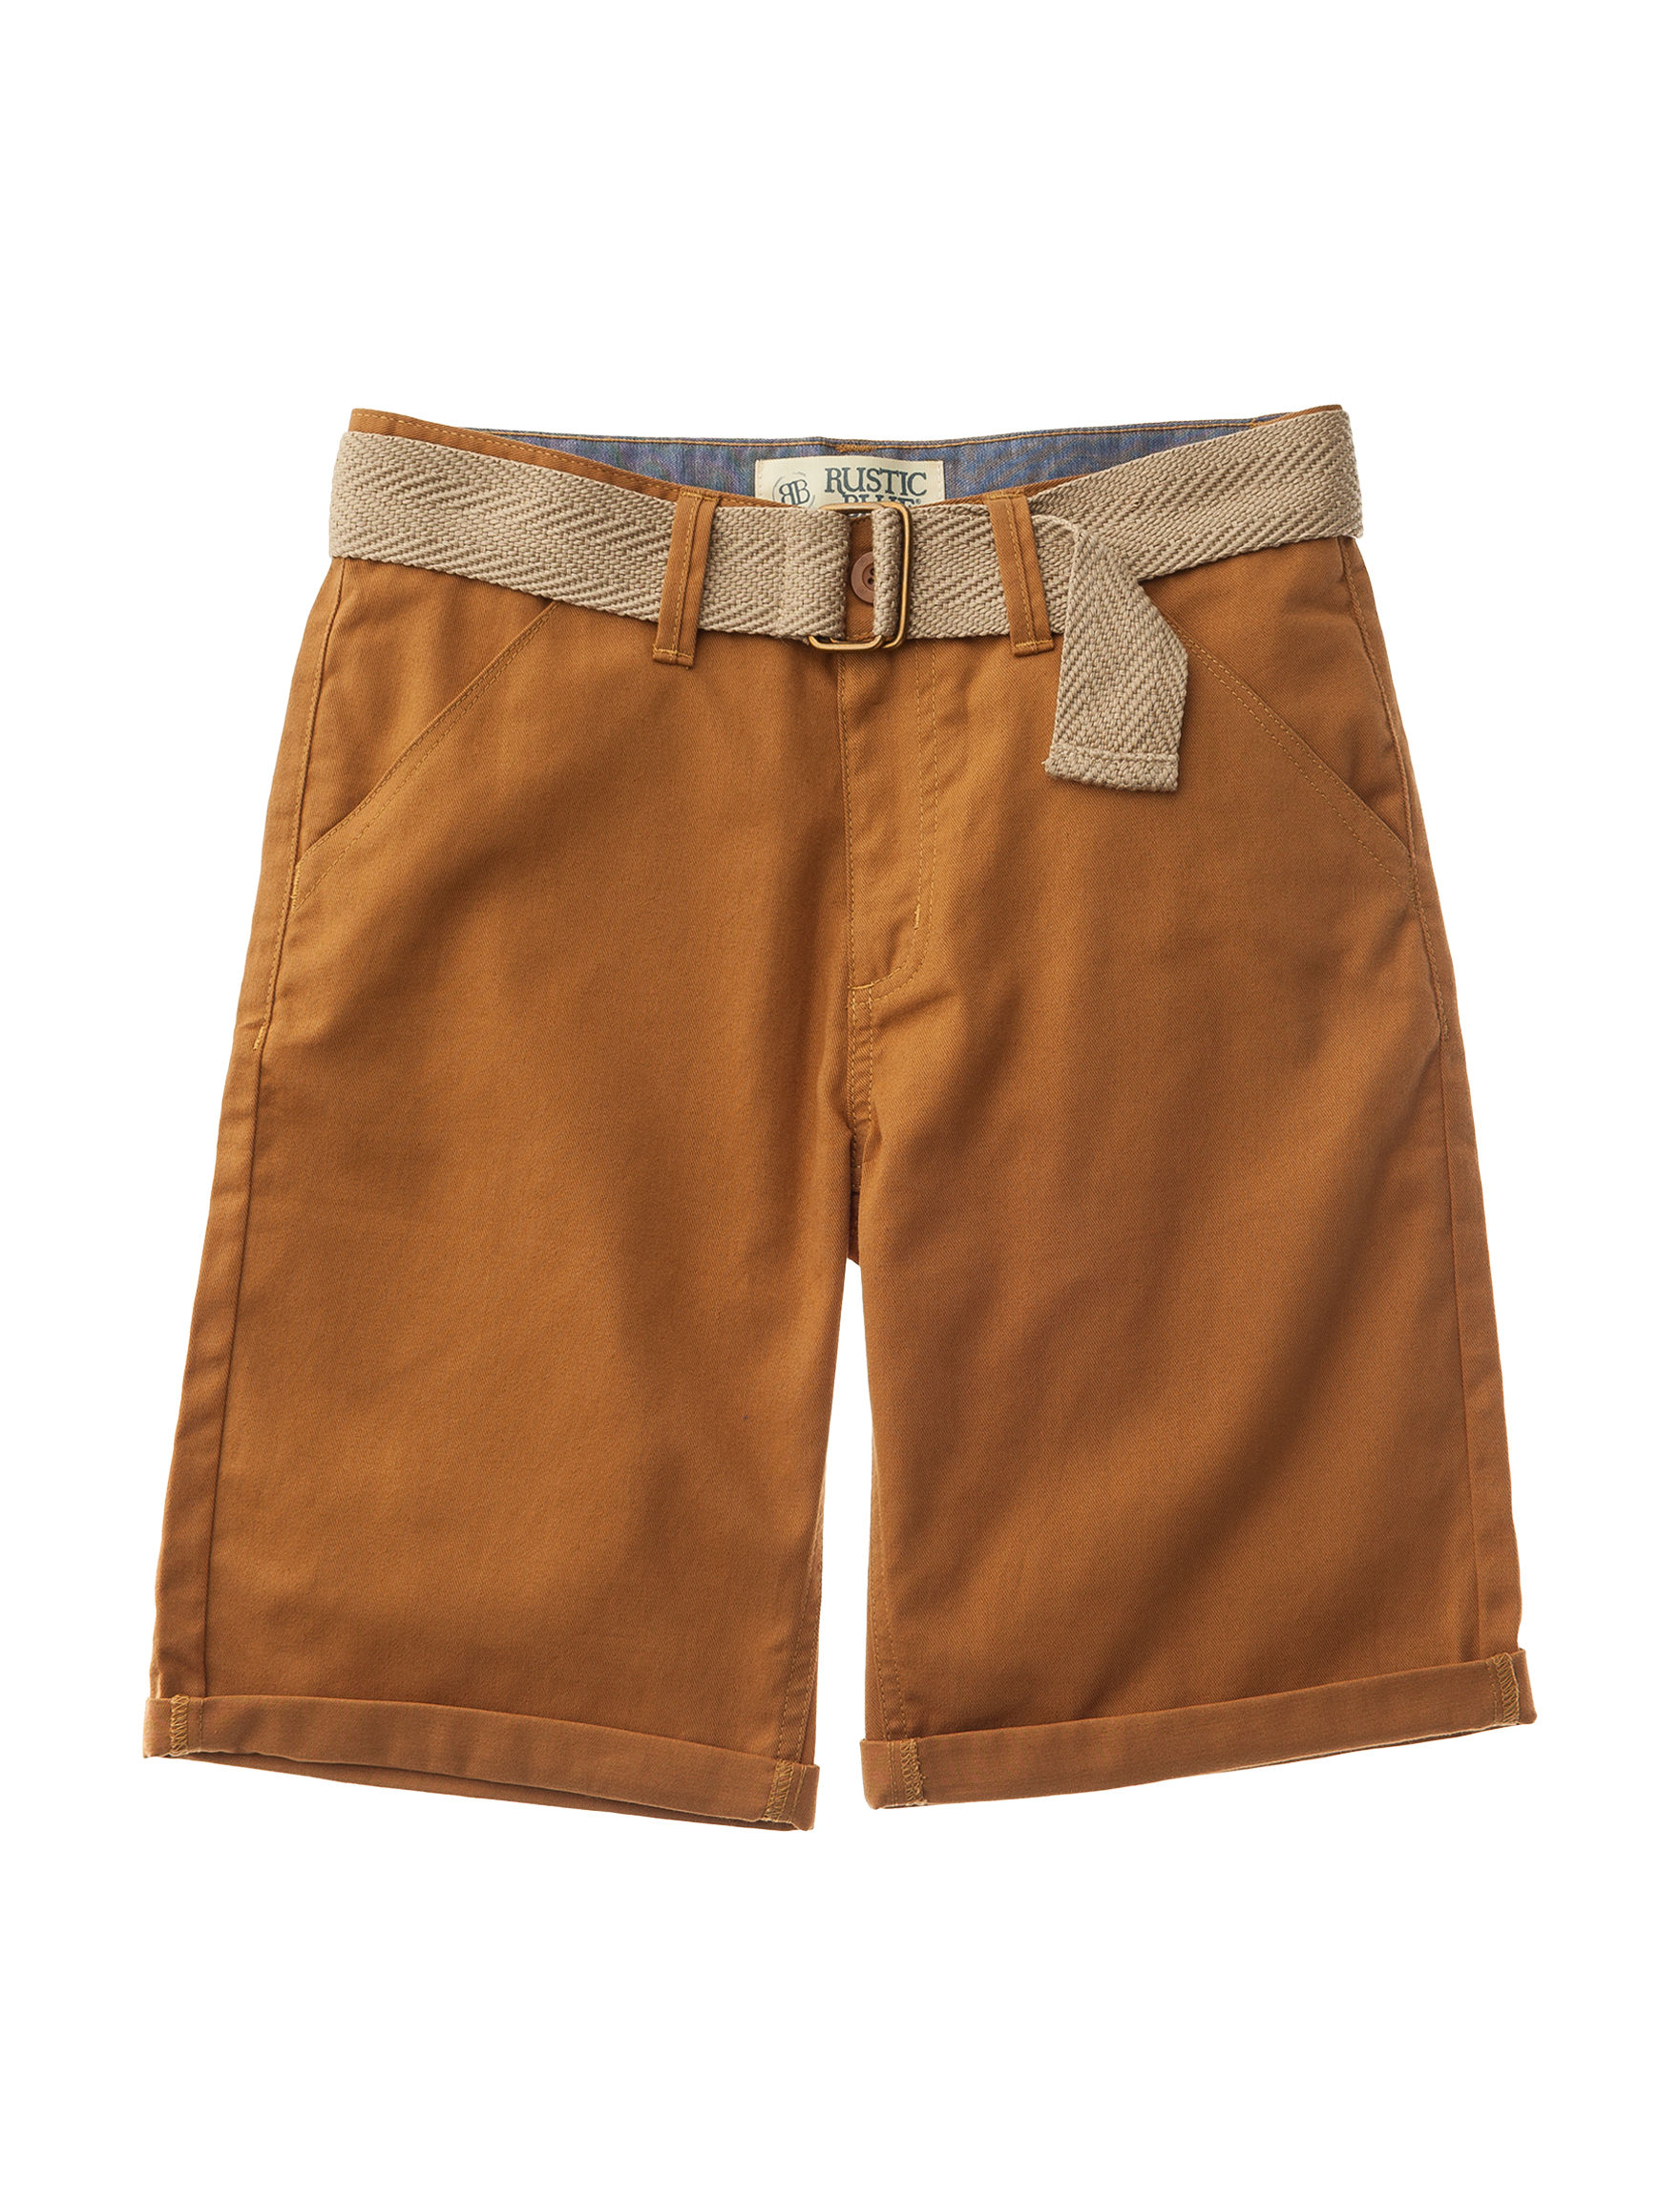 Rustic Blue Khaki Relaxed